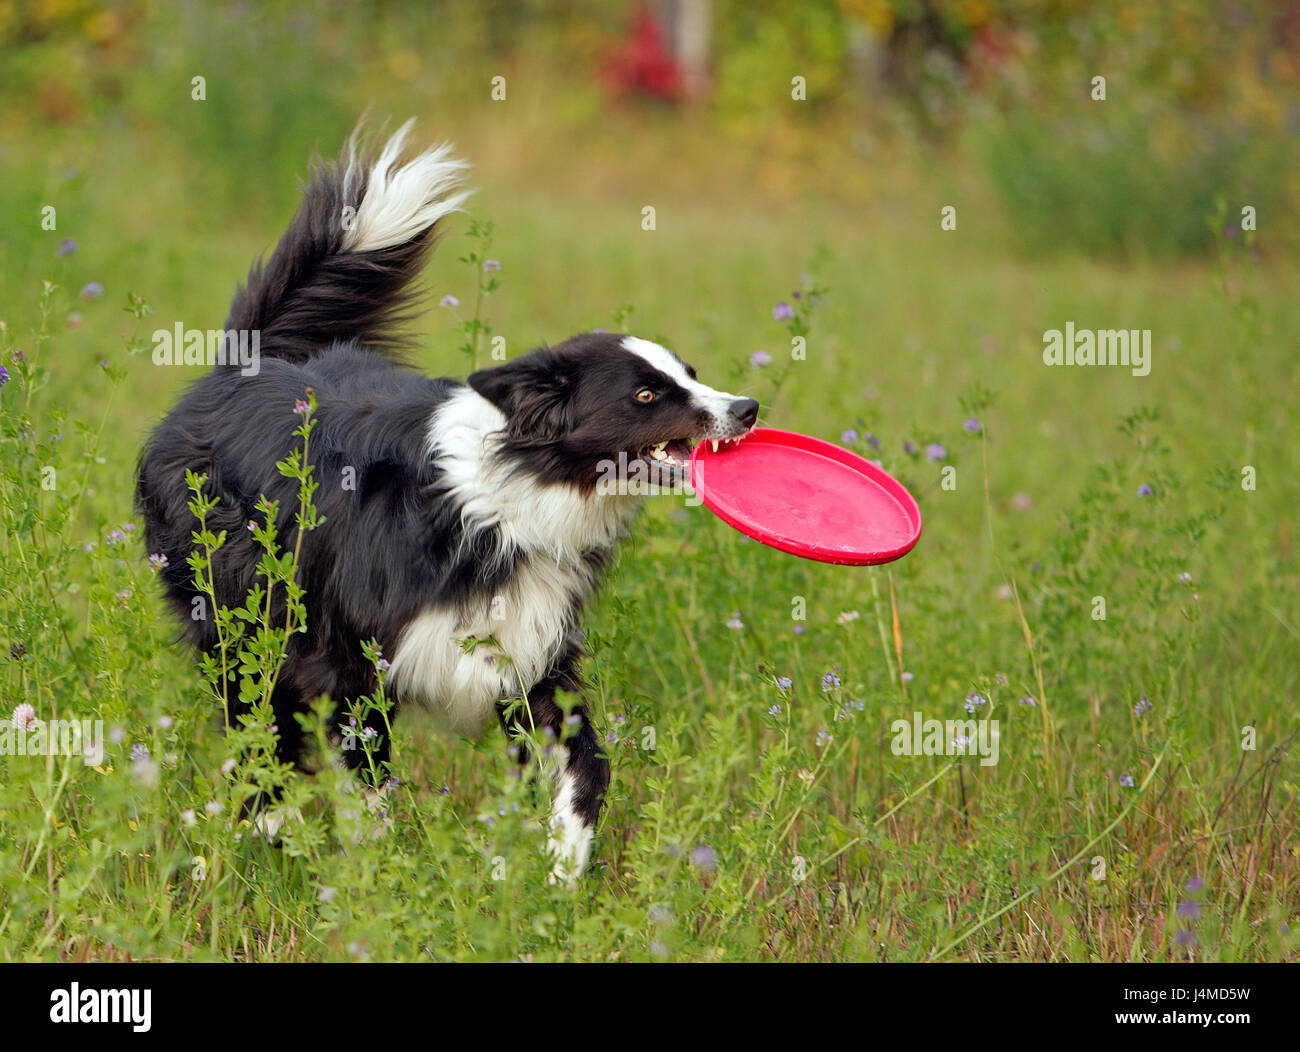 Border Collie in meadow fetching toy. - Stock Image